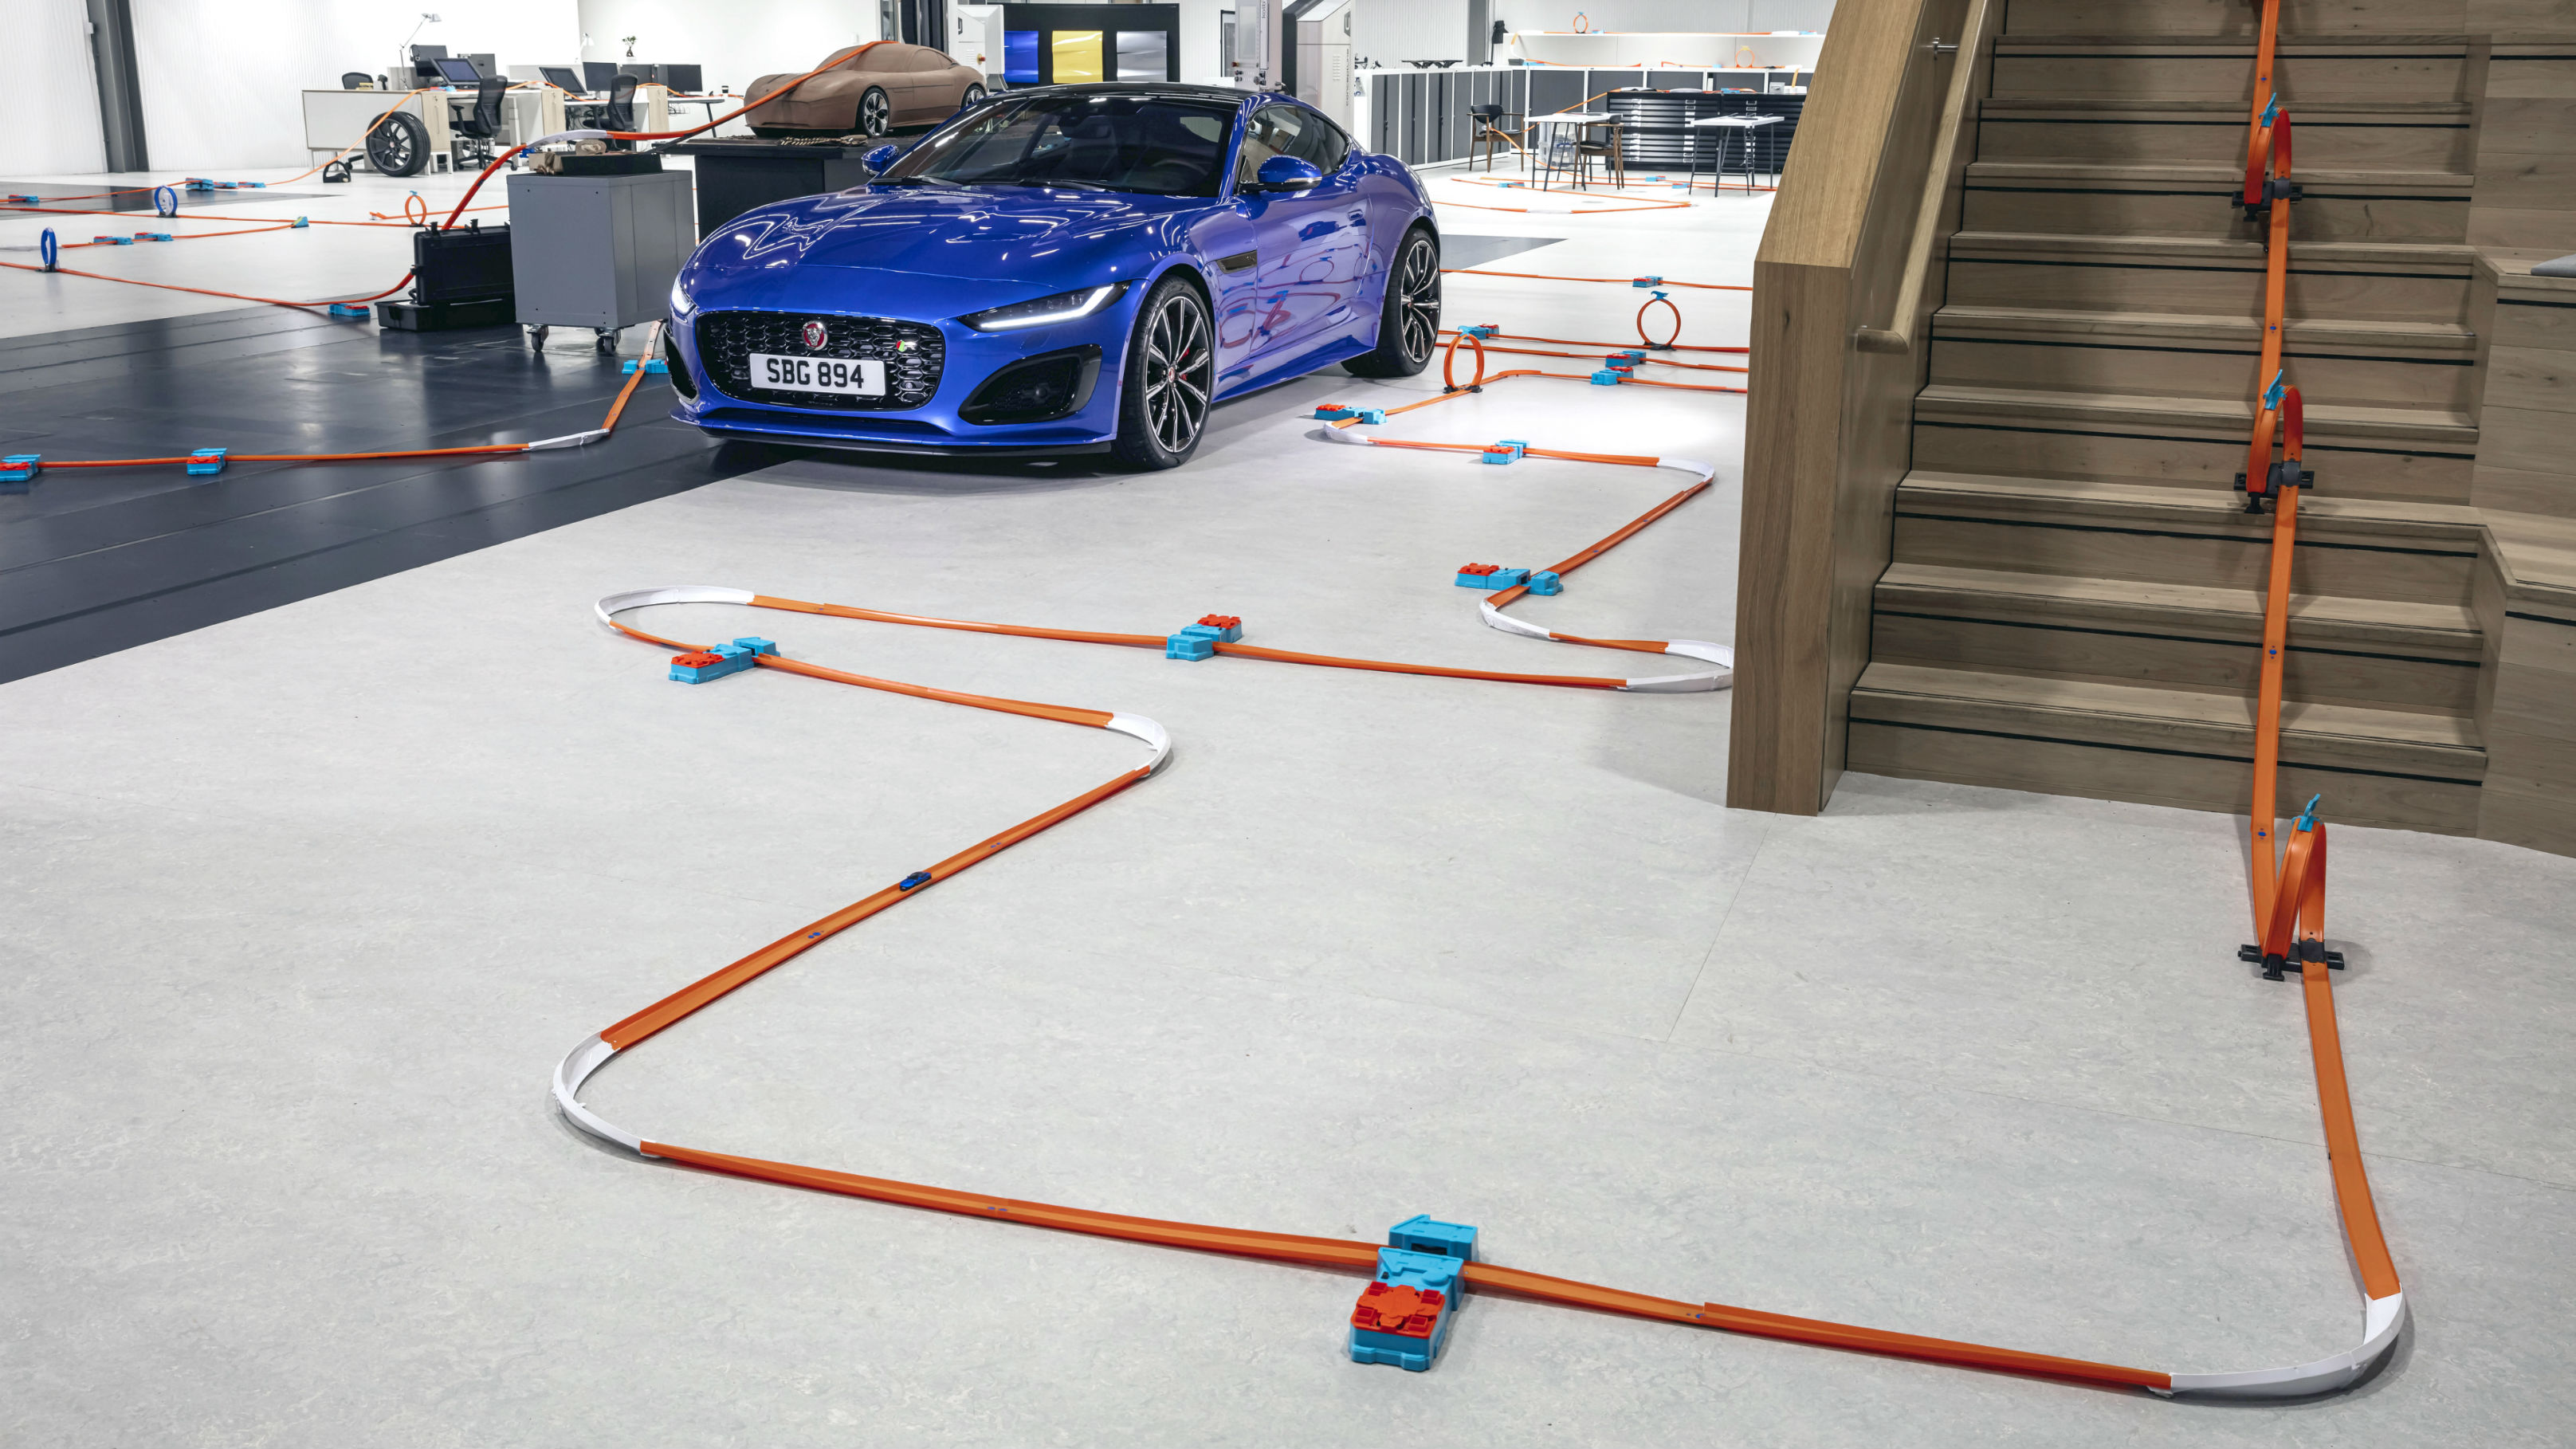 It's a track that shows off the new car, but also has more than a quarter of a kilometre of the signature orange Hot Wheels track.